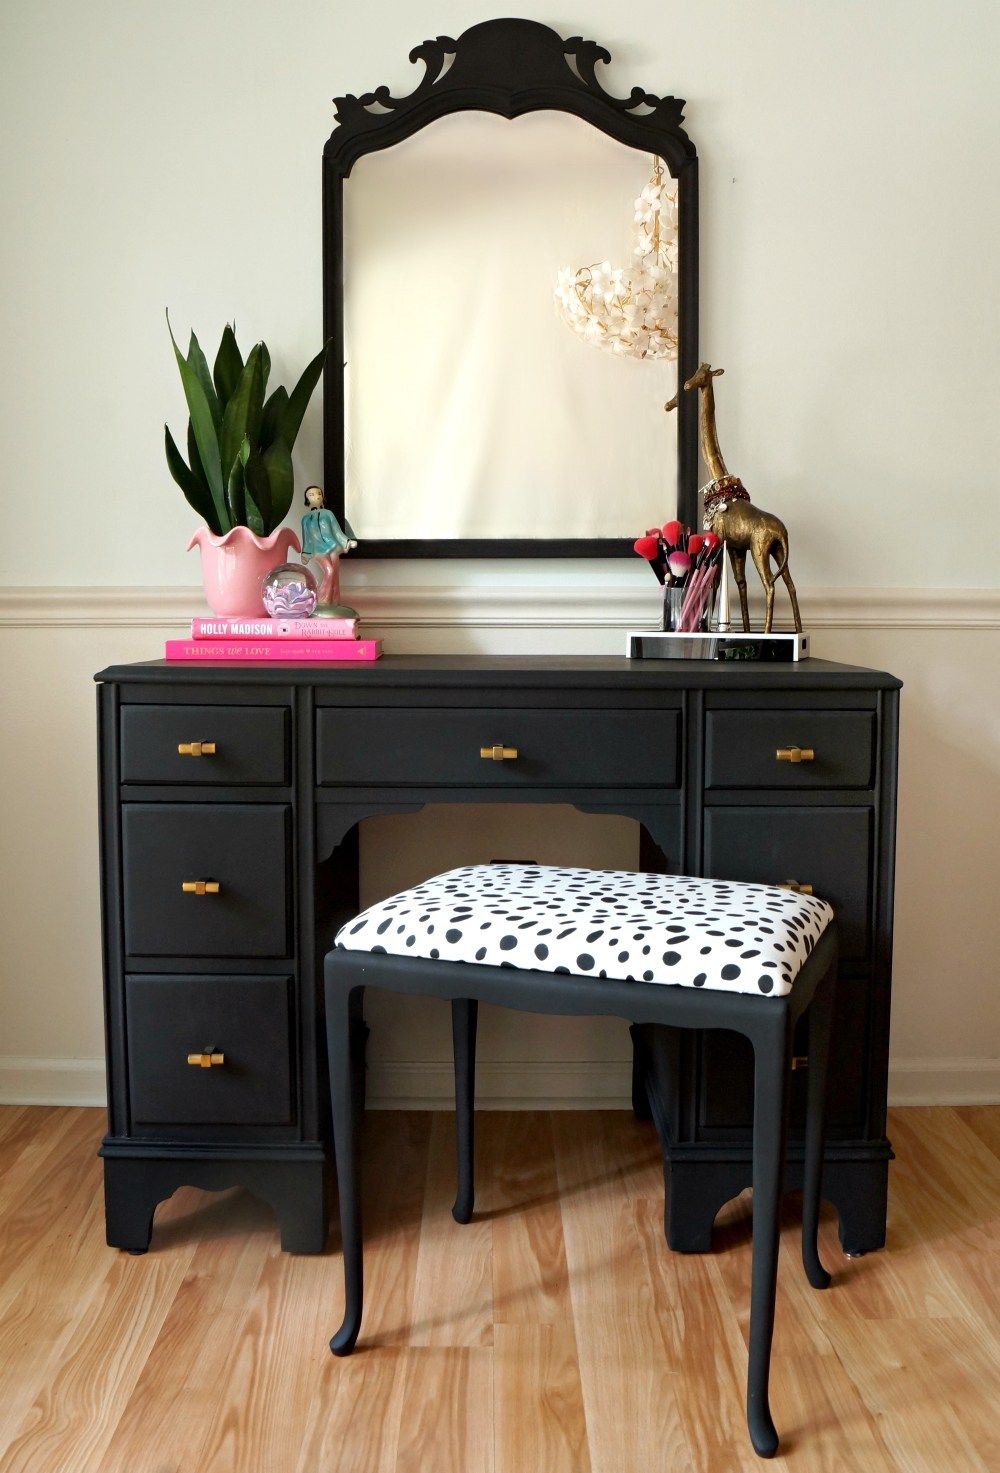 black and gold vanity set with polkadot seat so cute - Black Vanity Set